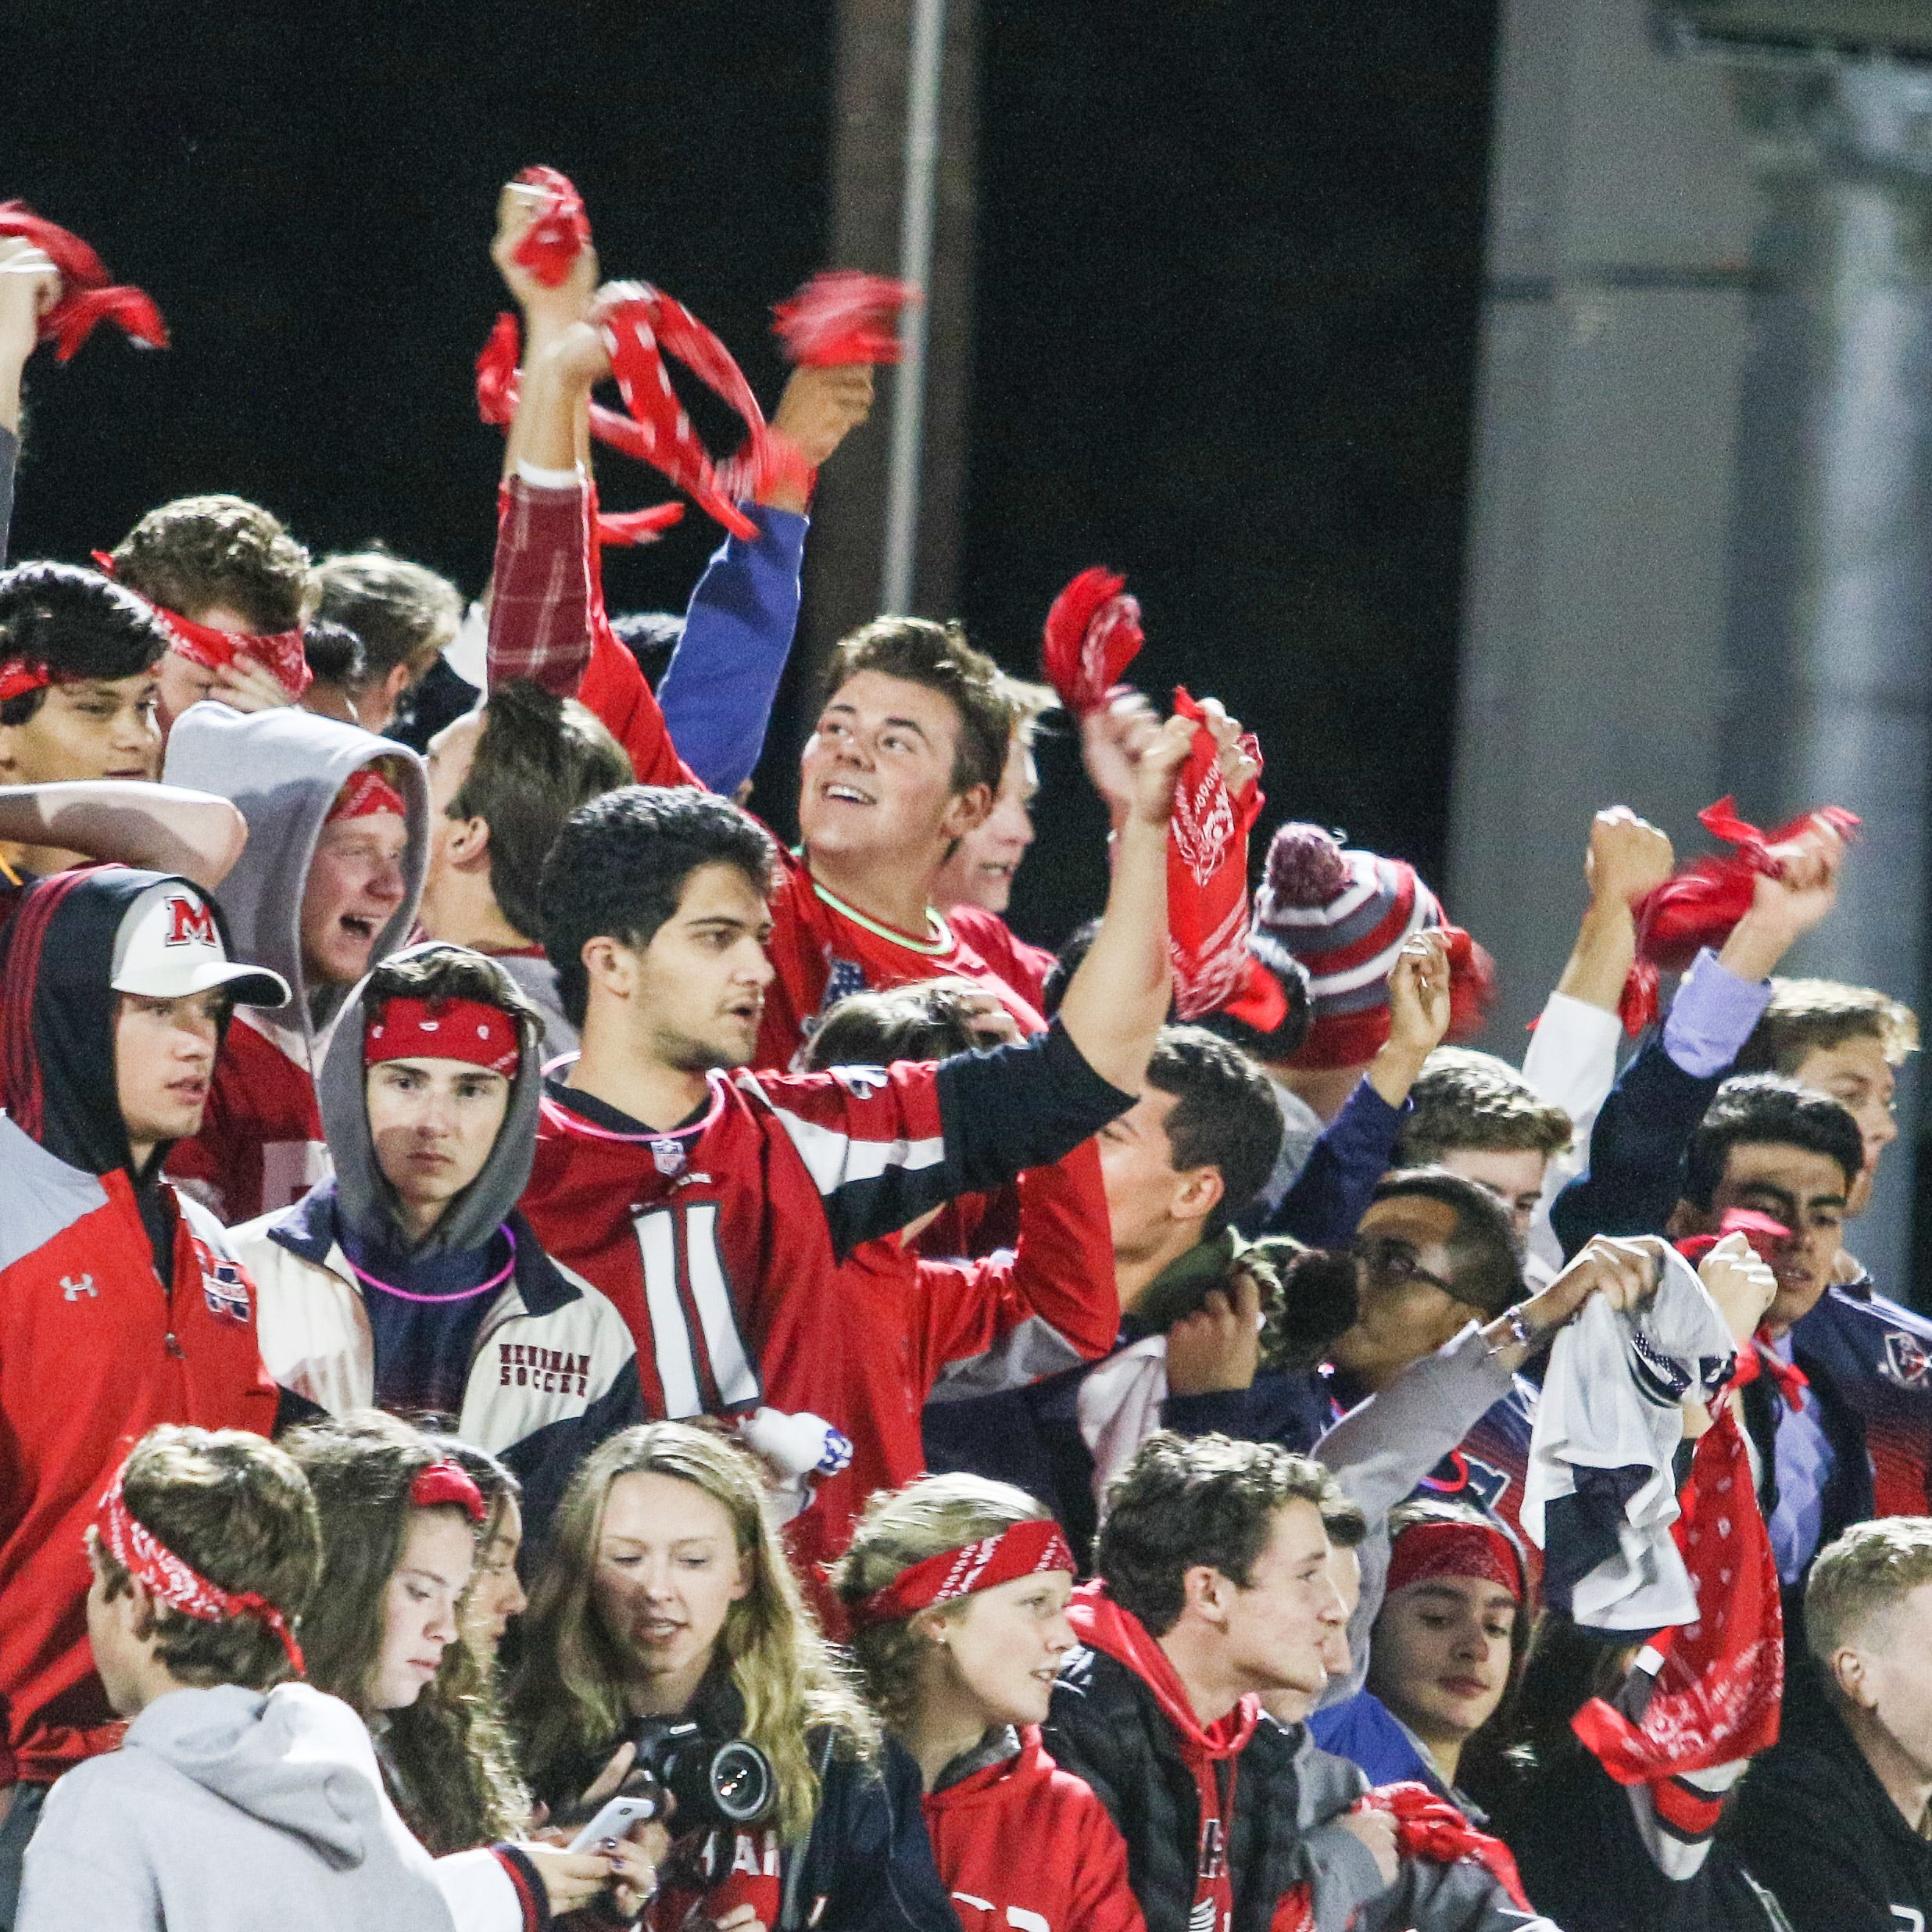 NJ football: Debut of Friday Night Lights  at Mendham